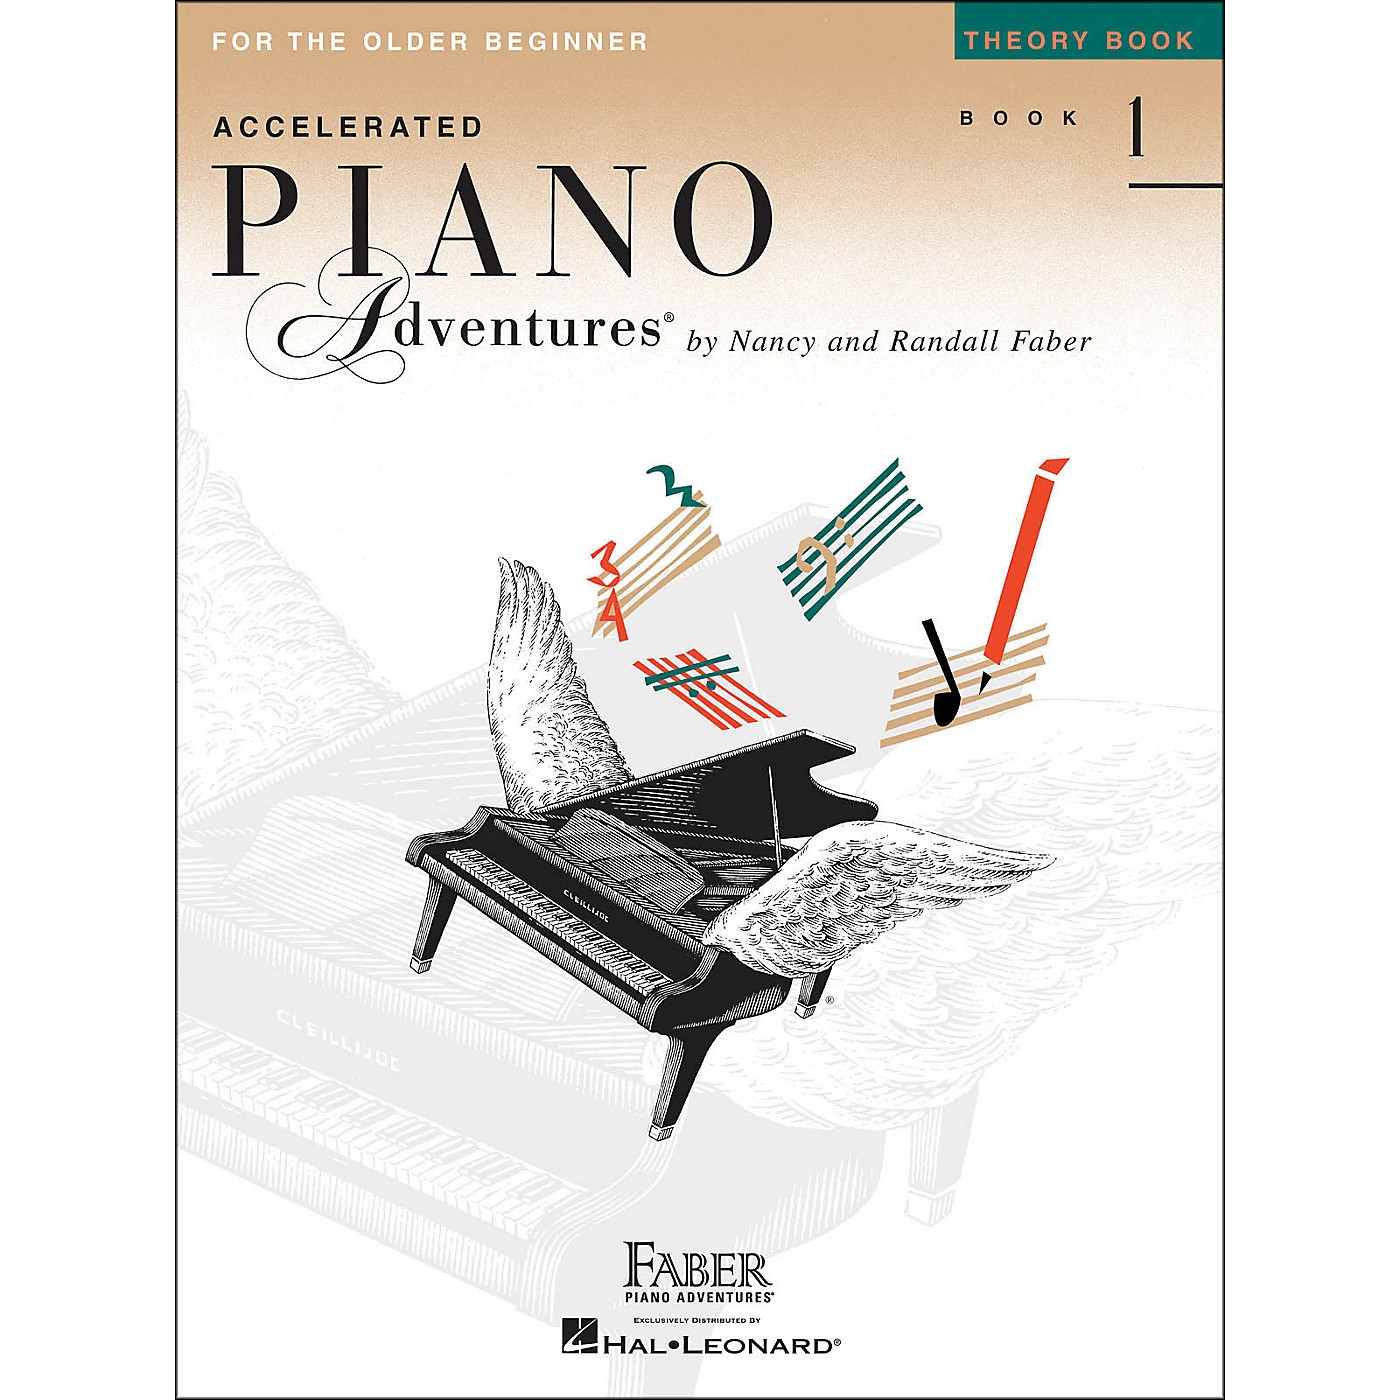 Faber Piano Adventures Accelerated Piano Adventures Theory Book 1 For The Older Beginner thumbnail